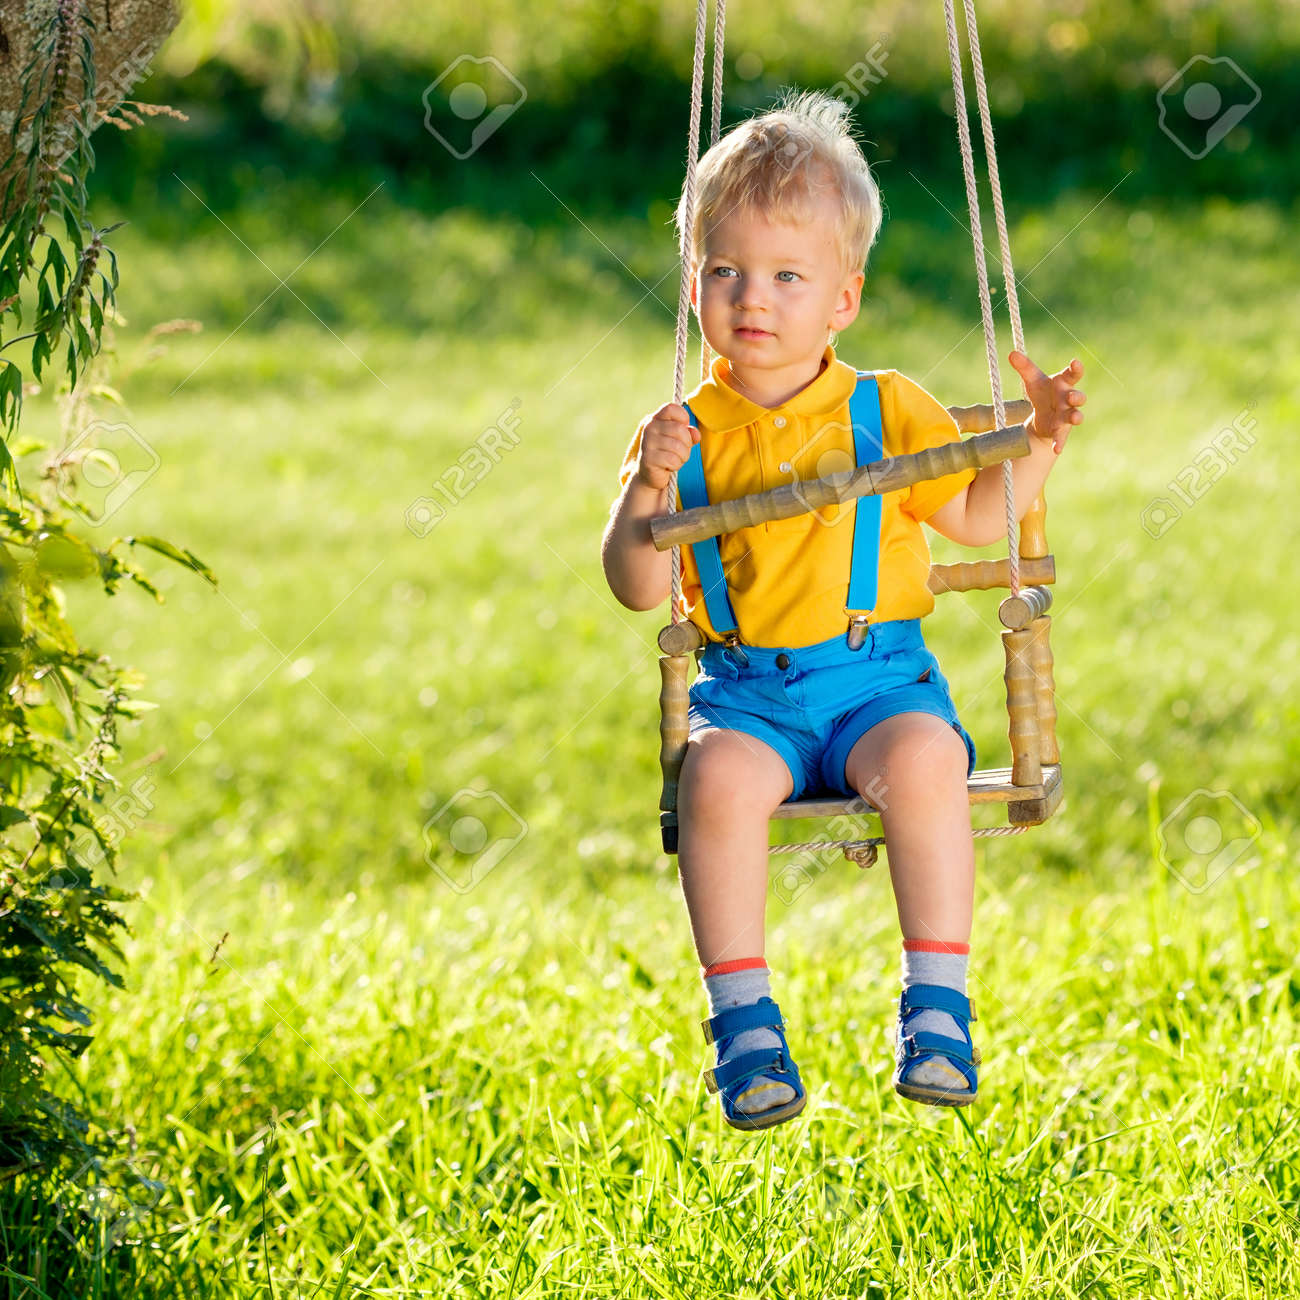 Portrait of toddler child swinging outdoors. Rural scene with one year old  baby boy at